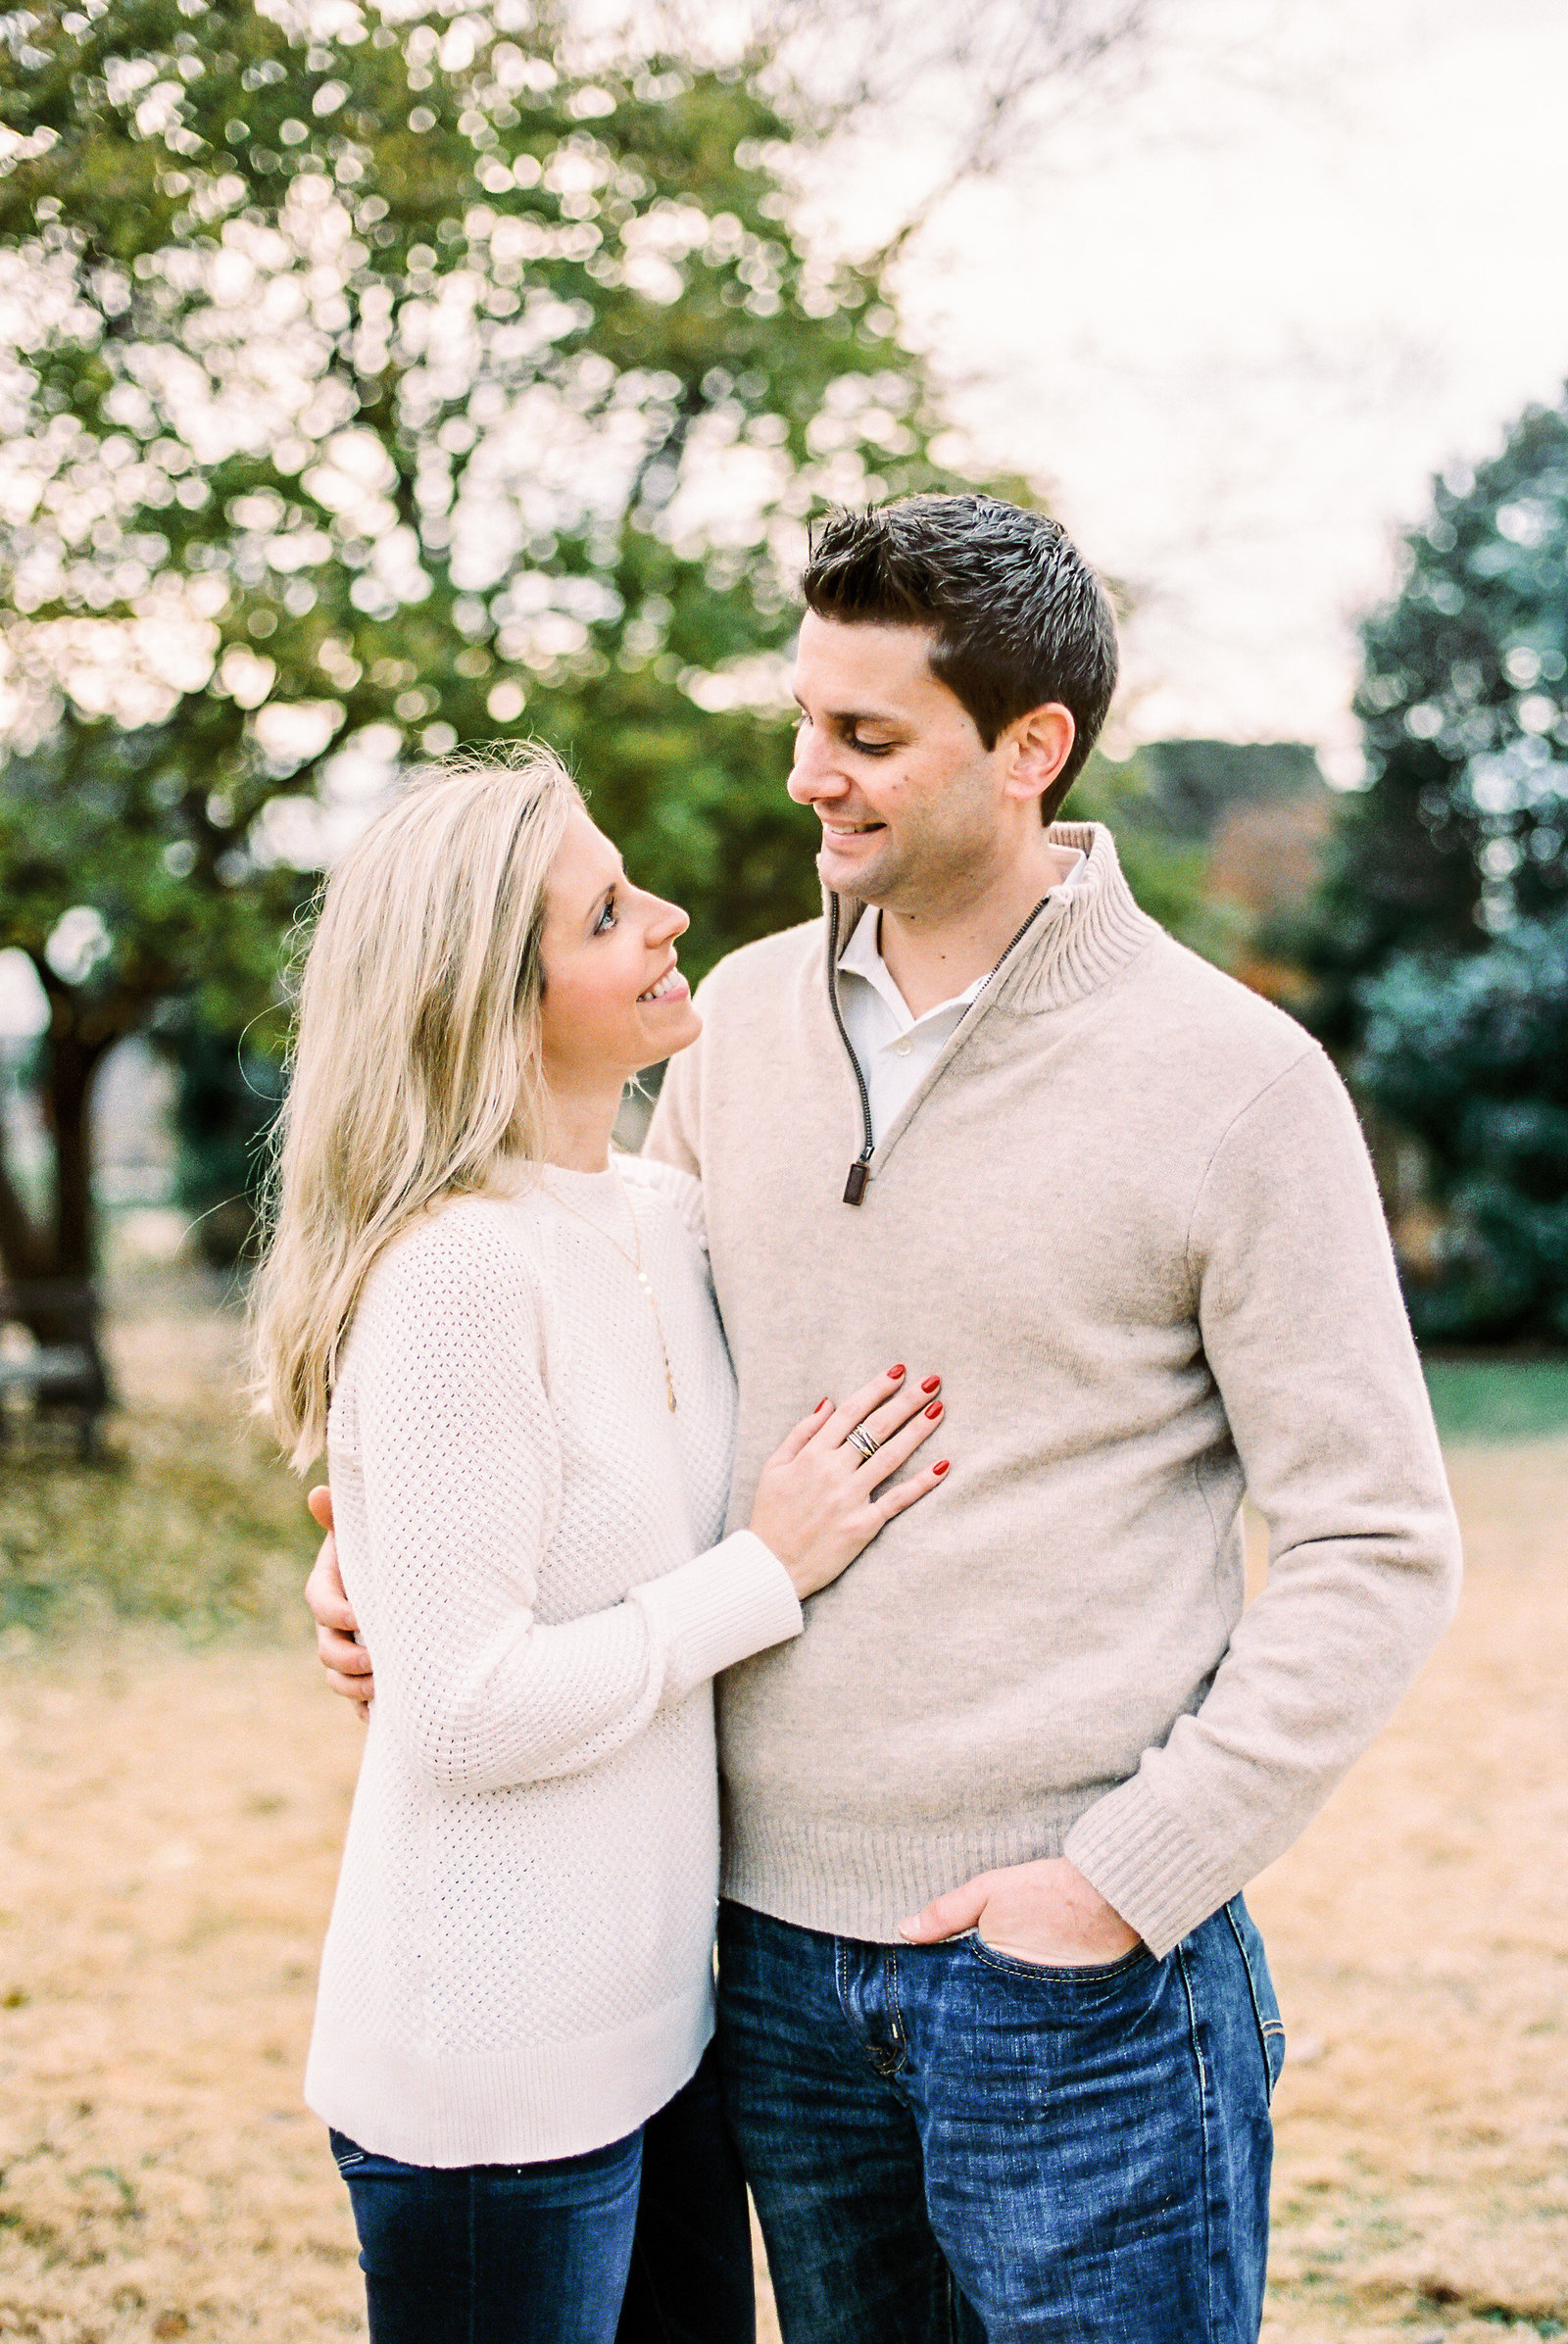 Raleigh Couples Portrait Film Photography